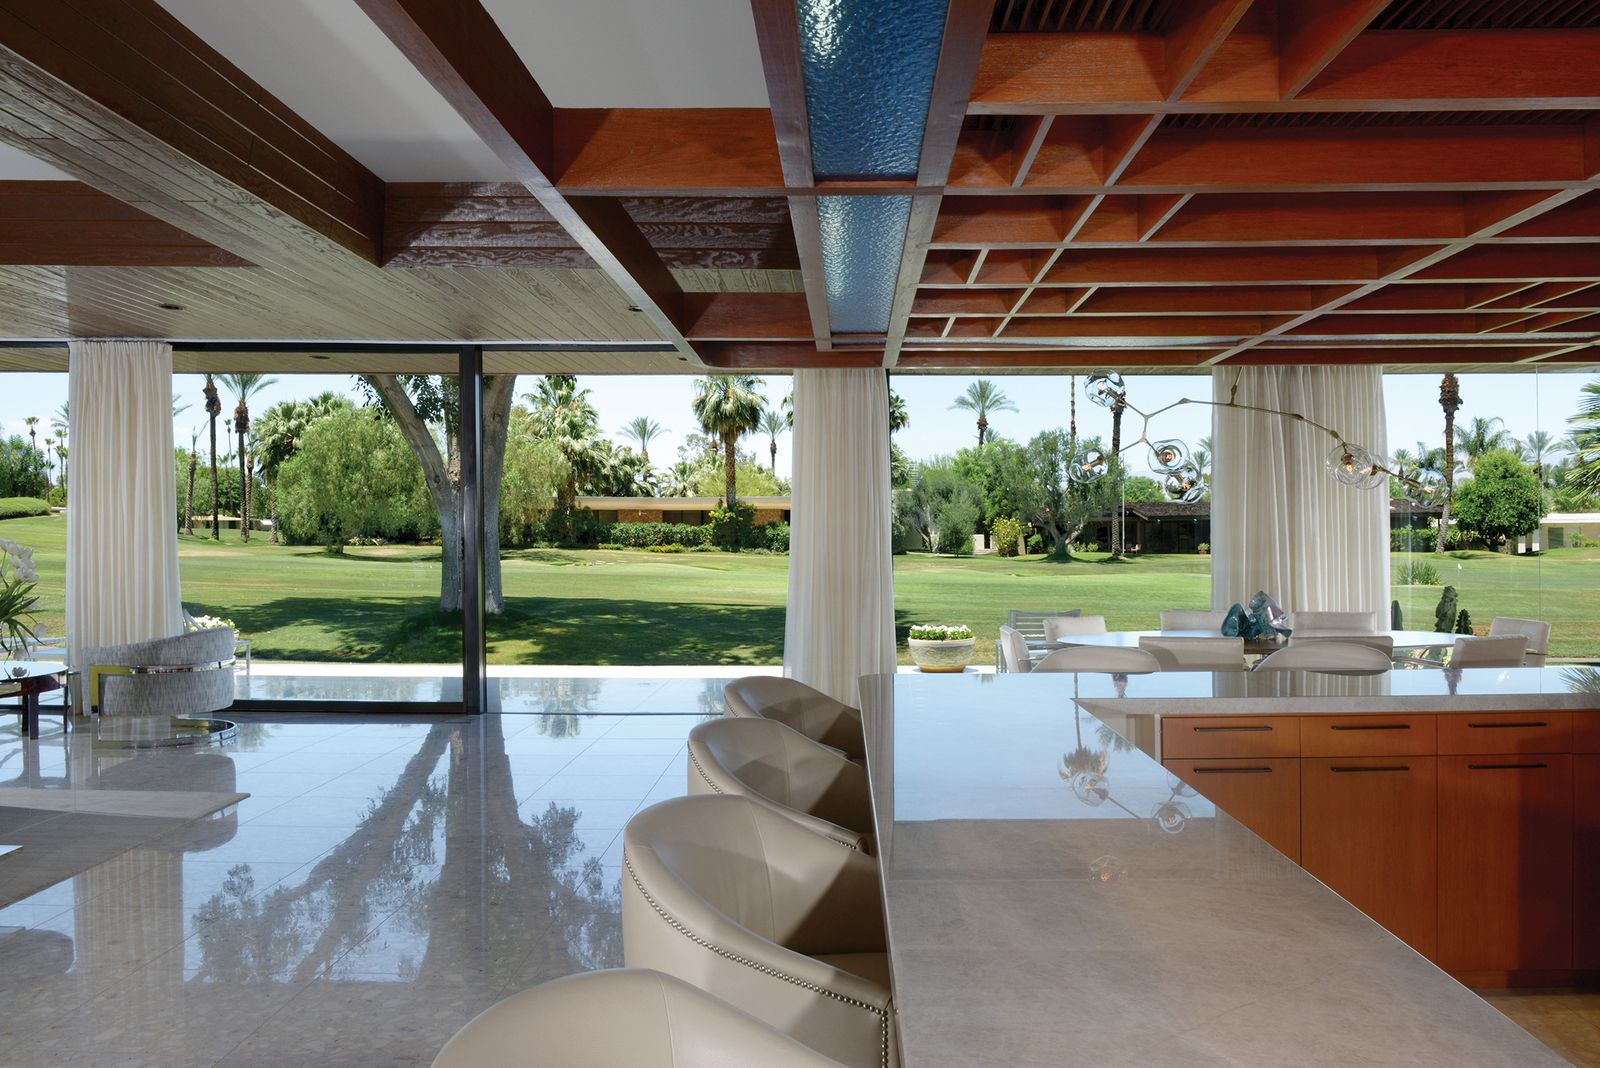 A New Book Documents the Rarely Seen Midcentury